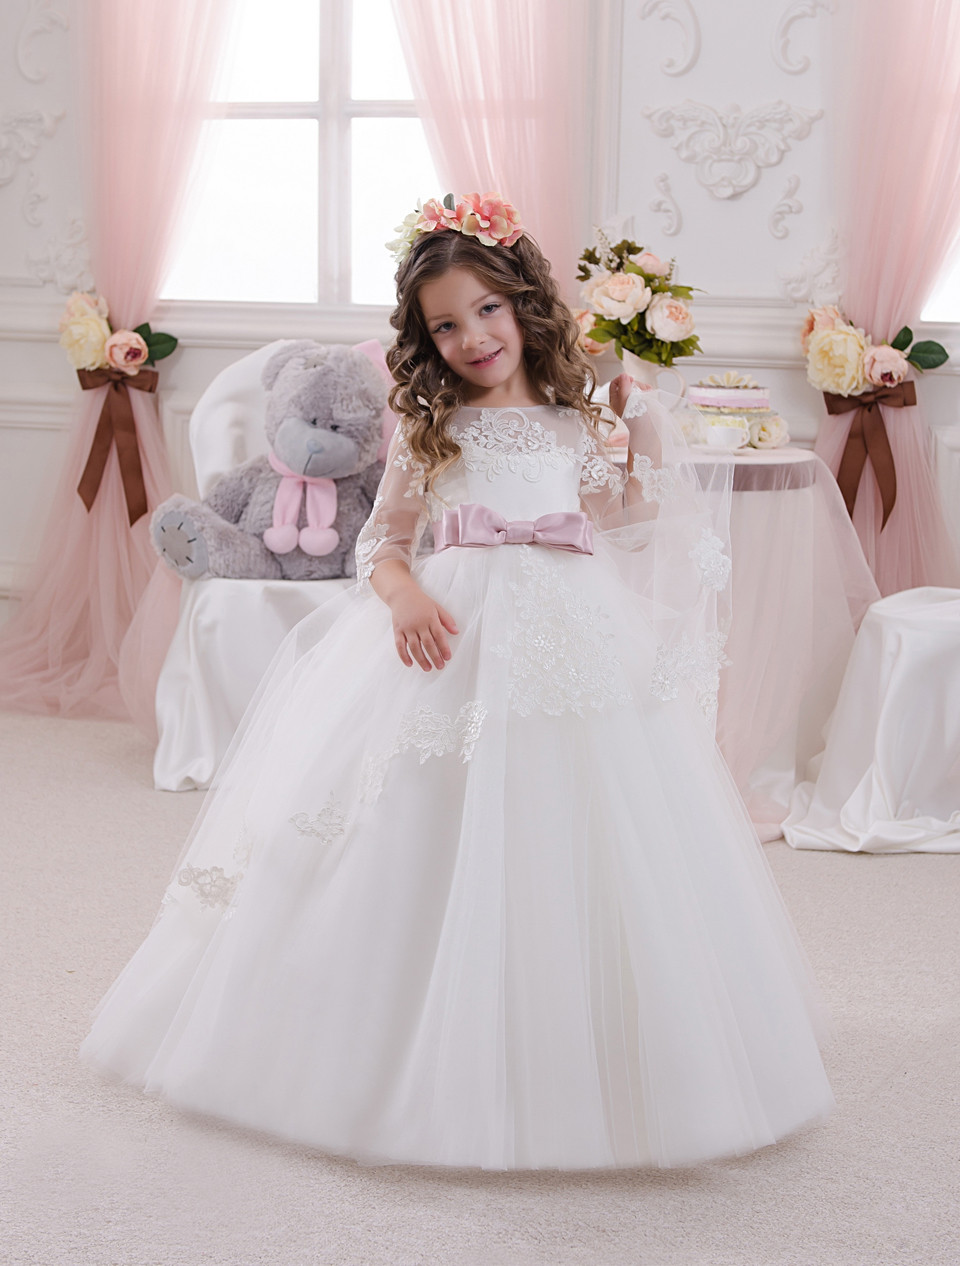 2019 New Flower Girl Dresses for Wedding Lace with Bow Sash Girls Birthday Dress Communion Gown Pageant Dress 1-16 Years Old